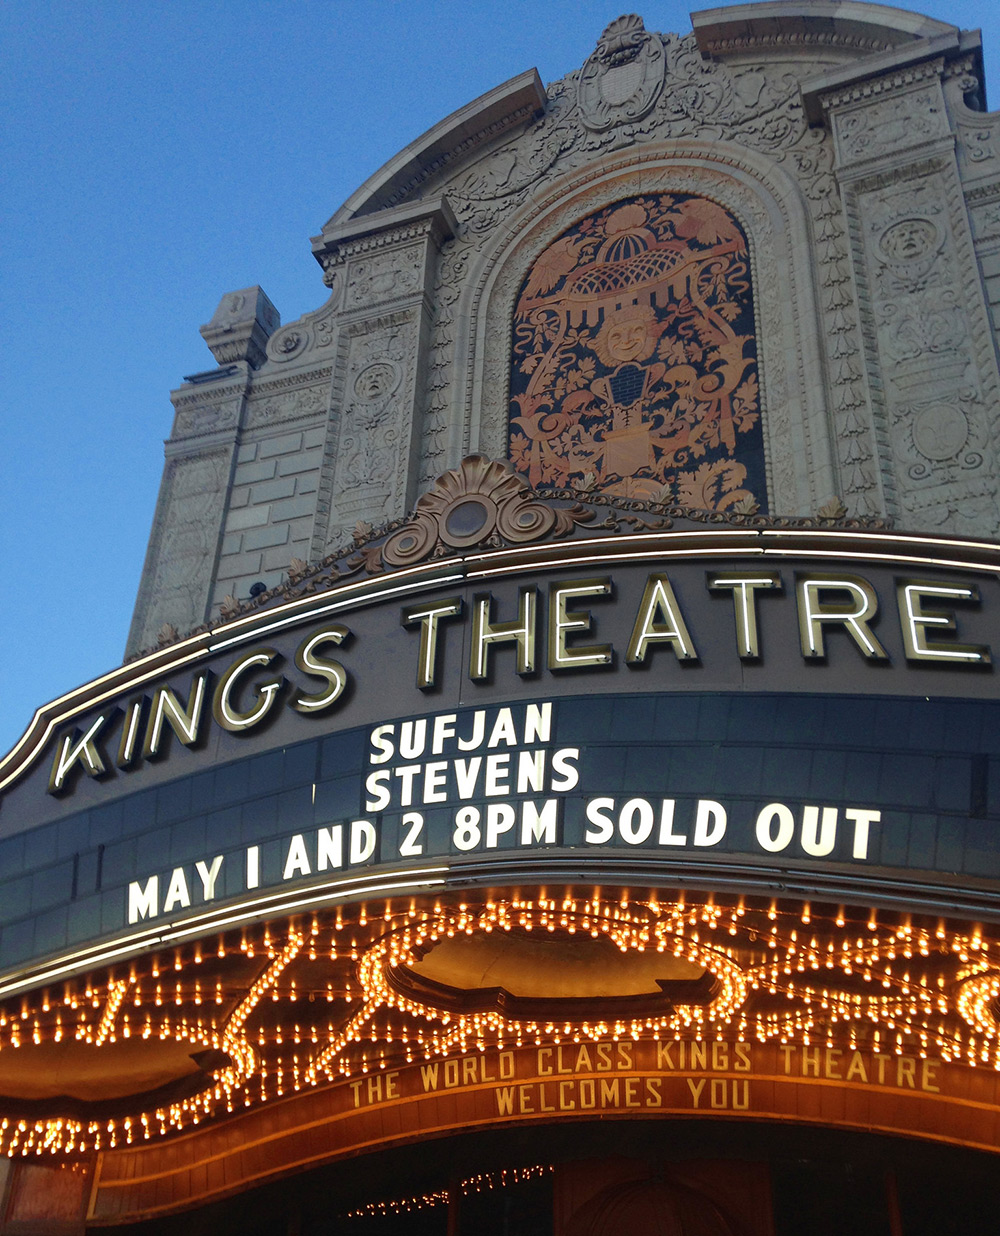 The facade of the newly renovated Kings Theatre in Ditmas Park, Brooklyn, NY. Complete renovation totaled $93 million.